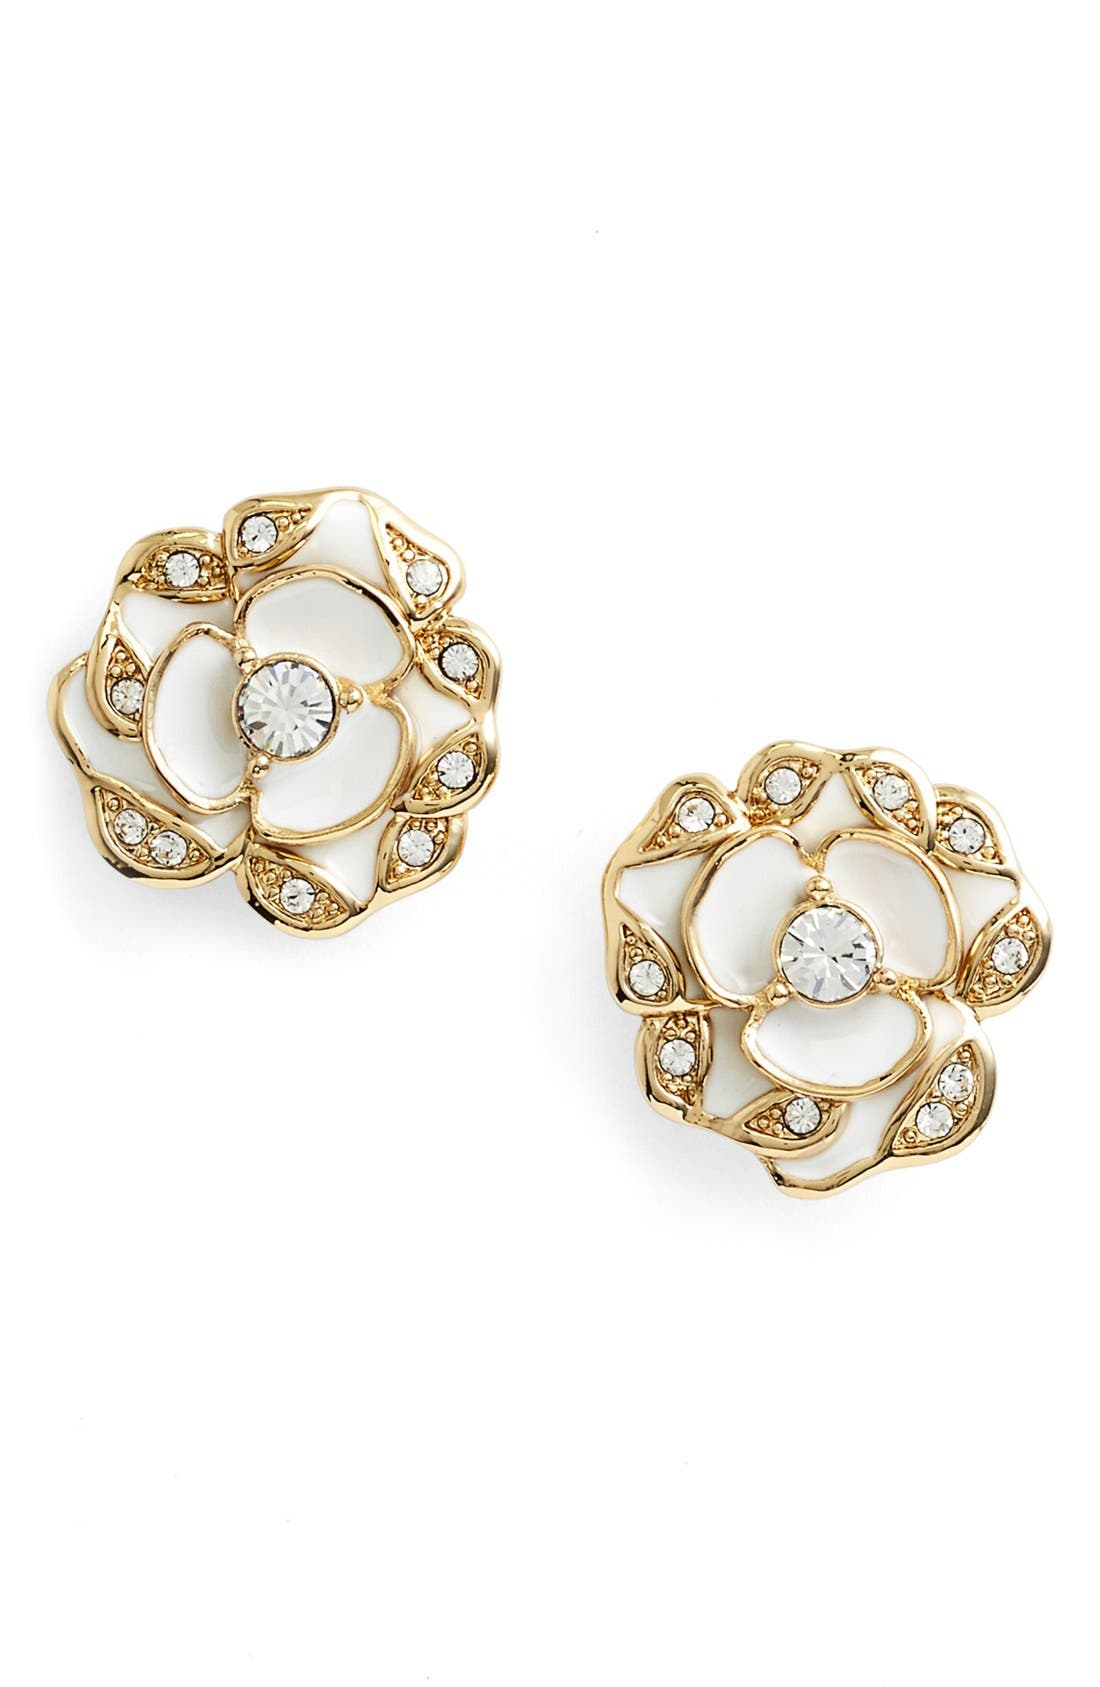 Main Image - kate spade new york 'beach house bouquet' flower stud earrings